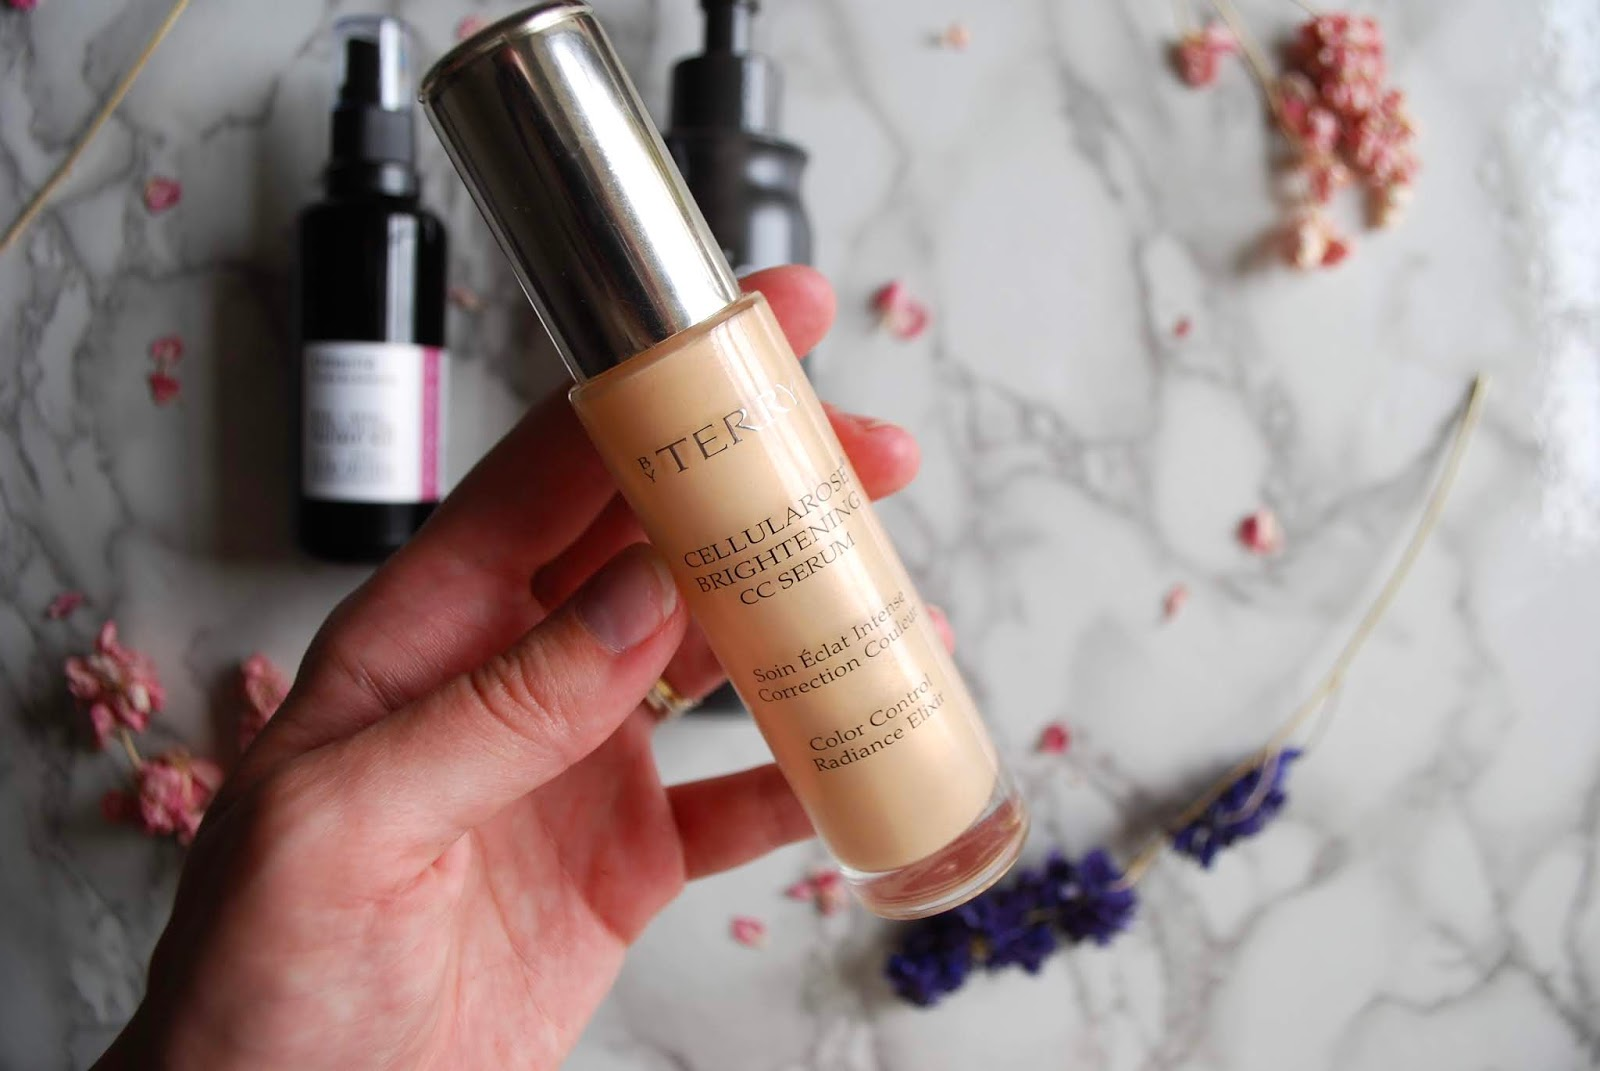 By Terry Cellularose Brightening CC Serum in Apricot Glow review